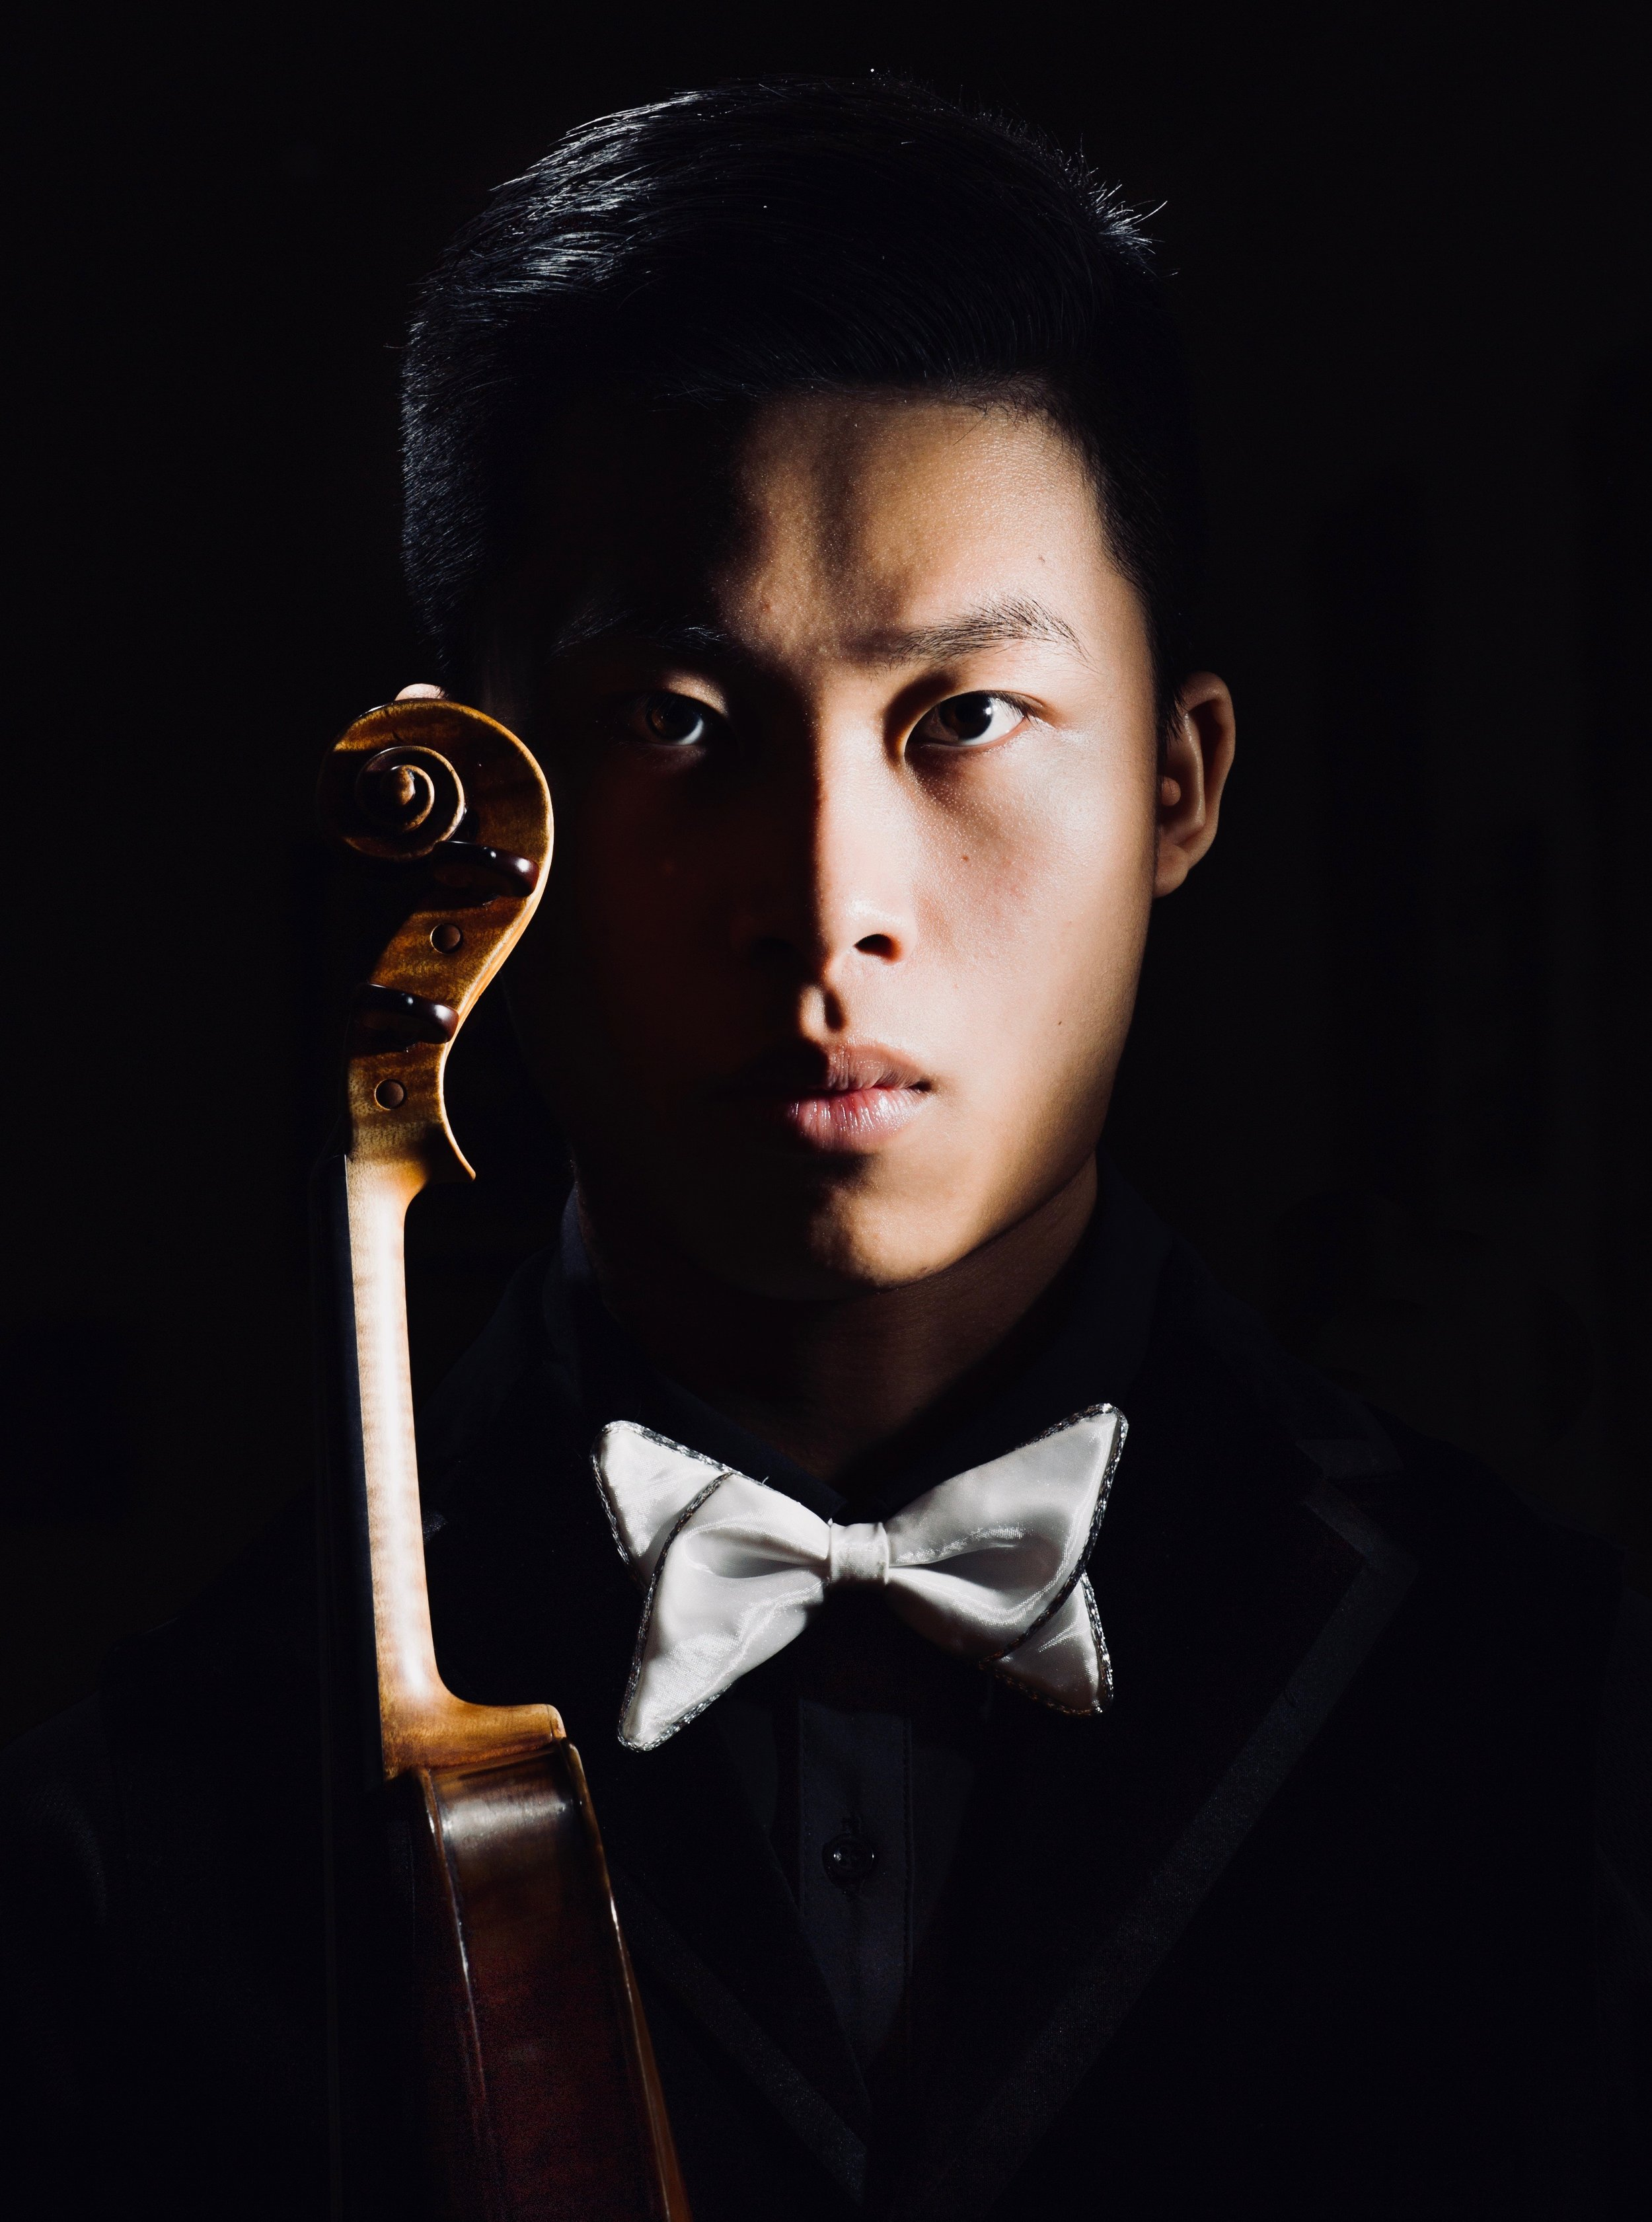 Kerson Leong (Violin) - Acclaimed by musicians and audiences alike for his commanding stage presence, magnificent tone, and musical integrity, the Canadian violinist Kerson Leong is quickly establishing himself at the forefront of his generation since gaining international recognition by winning Junior First Prize at the Menuhin Competition 2010.He has performed as soloist around the world with such ensembles as the Oslo-Philharmonien, Wiener KammerOrchester, Stavanger Symfoniorkester, Orquestra Gulbenkian, I Solisti Veneti, the Toronto Symphony Orchestra, l'Orchestre symphonique de Quebec, l'Orchestre Métropolitain, and the National Arts Centre Orchestra of Canada. He has collaborated with such conductors as Yannick Nézet-Séguin, Peter Oundjian, Christian Vasquez, Augustin Dumay, Christopher Warren-Green, Jacques Lacombe, and Lio Kuokman. Highlights of Kerson's 2017/2018 season include his Carnegie Hall debut giving the North American premiere of John Rutter's latest work Visions at the Stern Auditorium, debuts with the Kansai Philharmonic Orchestra, the Royal Philharmonic Orchestra and the Stockton Symphony Orchestra, as well as return performances with the Newfoundland, Sherbrooke, and Longueuil Symphony Orchestras.He is currently an Artist in Residence at the Queen Elisabeth Music Chapel in Belgium, mentored by Augustin Dumay. He has been a recipient of many awards such as the Sylva Gelber Music Foundation Award (2015-2017) and the Young Soloist Prize 2015 by the Radios Francophone Publiques. He has also received a Mentorship Award from the Lin Yao Ji Music Foundation of China for inspiring younger generations. He was named Revelation Radio-Canada 2014-2015 for classical music.Kerson performs on a 1741 Guarneri del Gesu courtesy of Canimex Inc, Drummondville (Quebec), Canada.Photo by Bruno Schlumberger